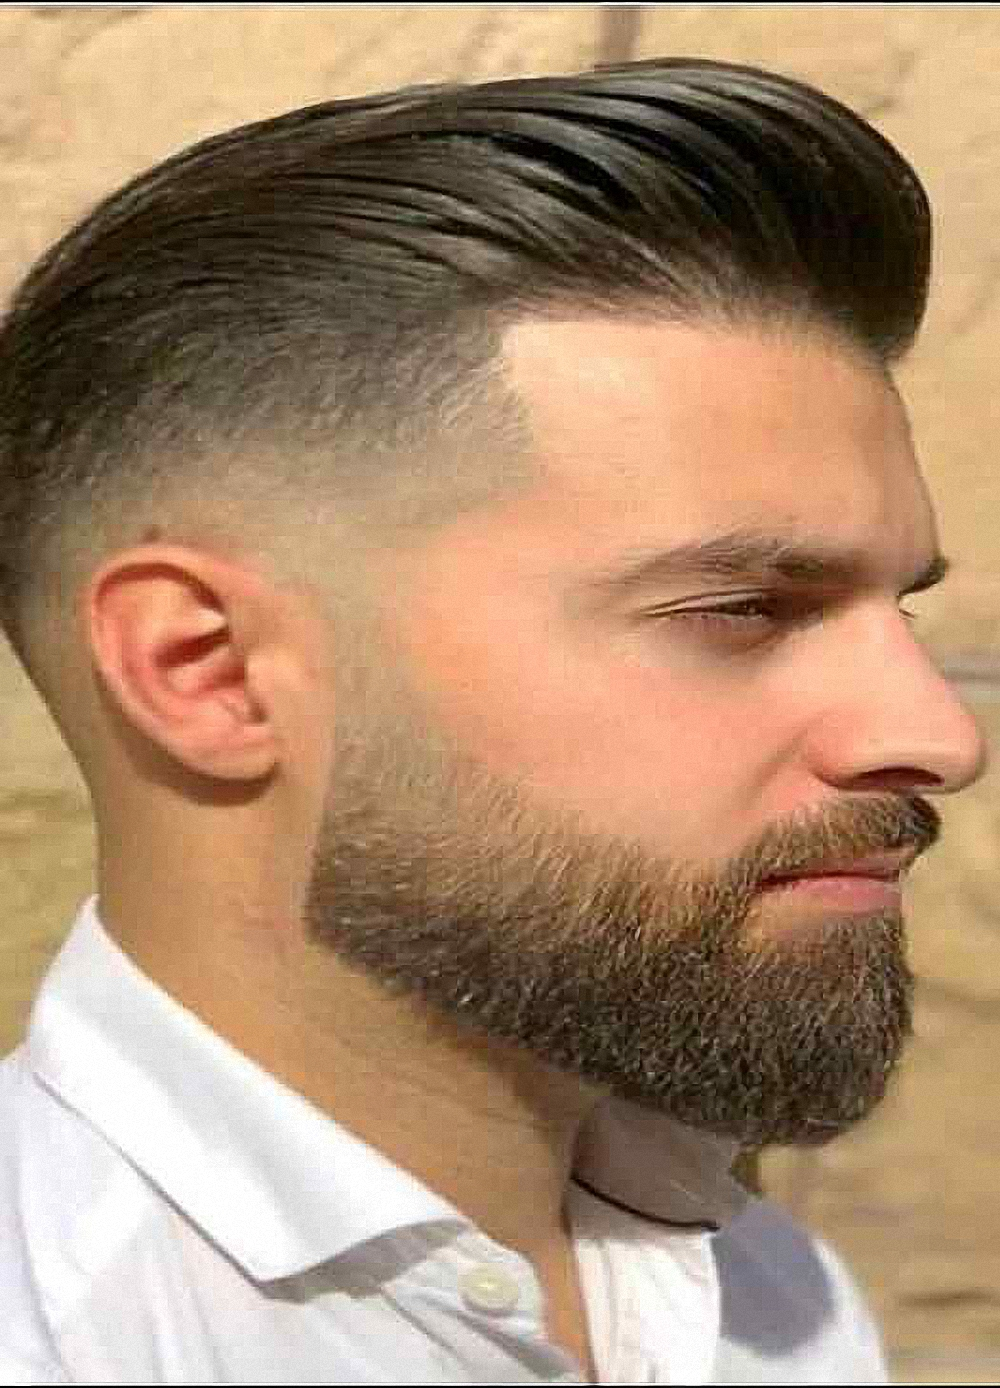 Boys New Beard Hairstyles Men Short Haircuts Barber Shop Decoration Salon Hairdressing Wall Art Vintage Kraft Paper Posters E Painting Calligraphy Aliexpress